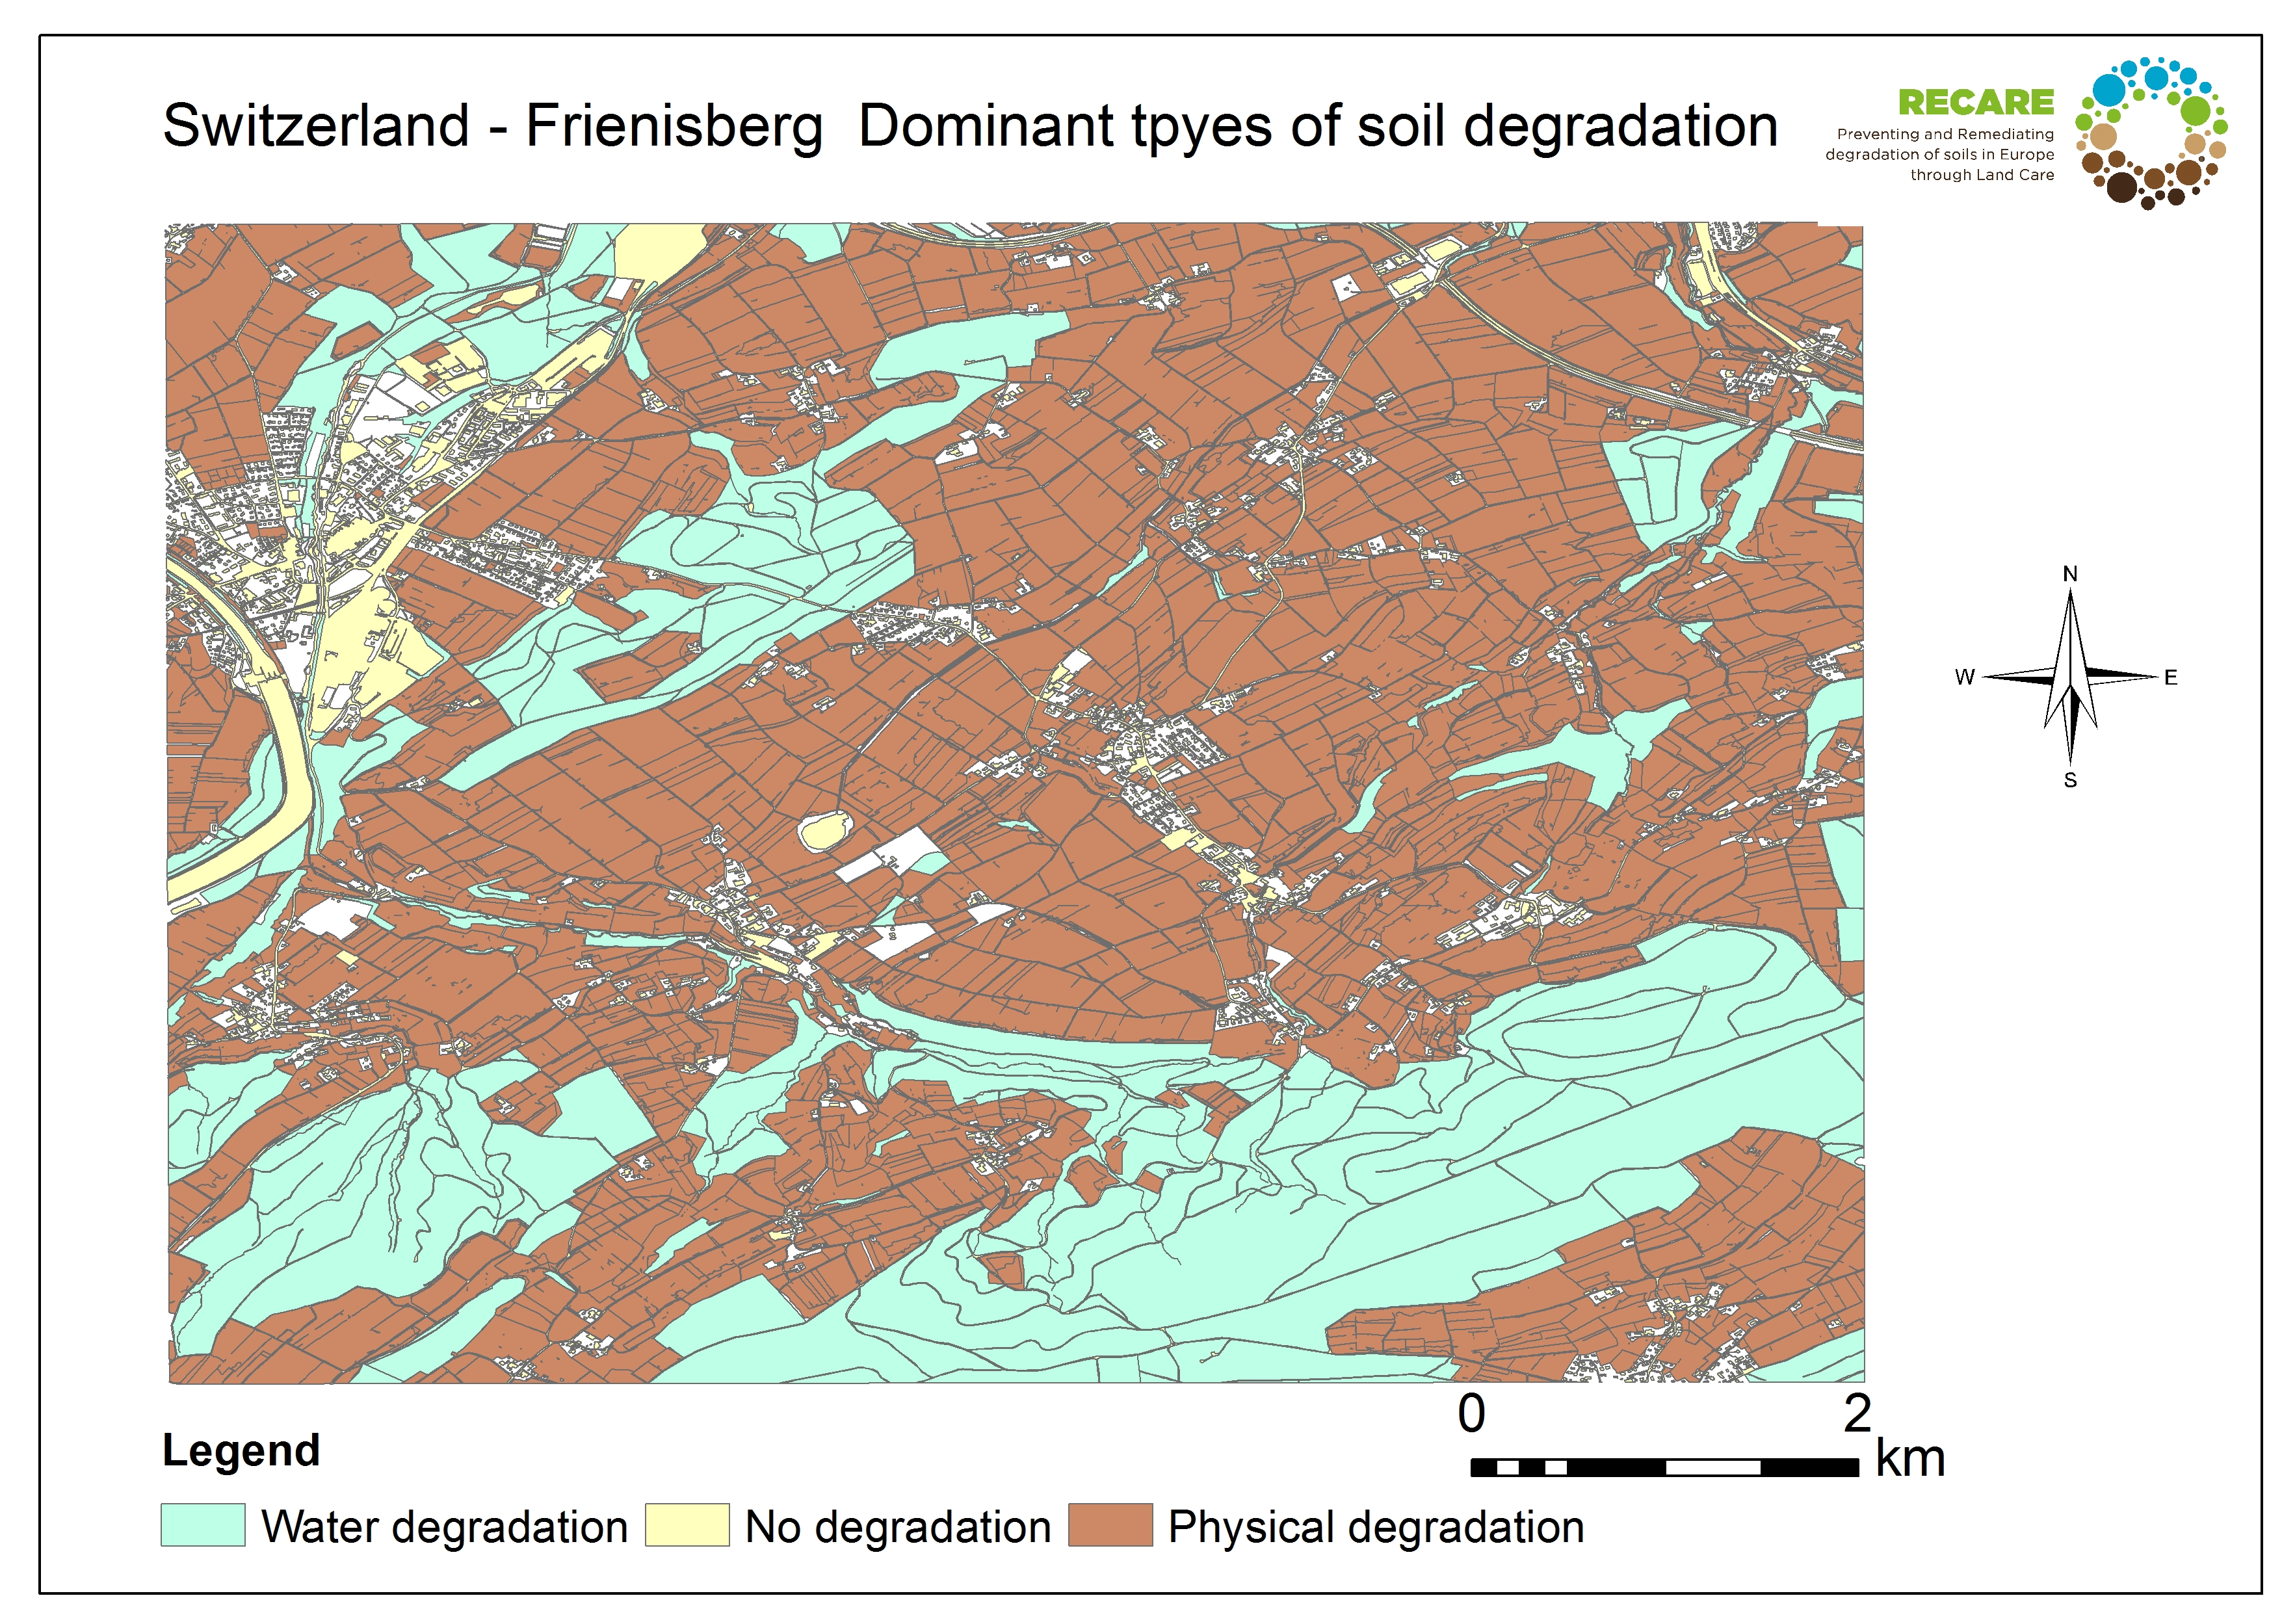 Switzerland Frienisberg dominant types of soil degradation